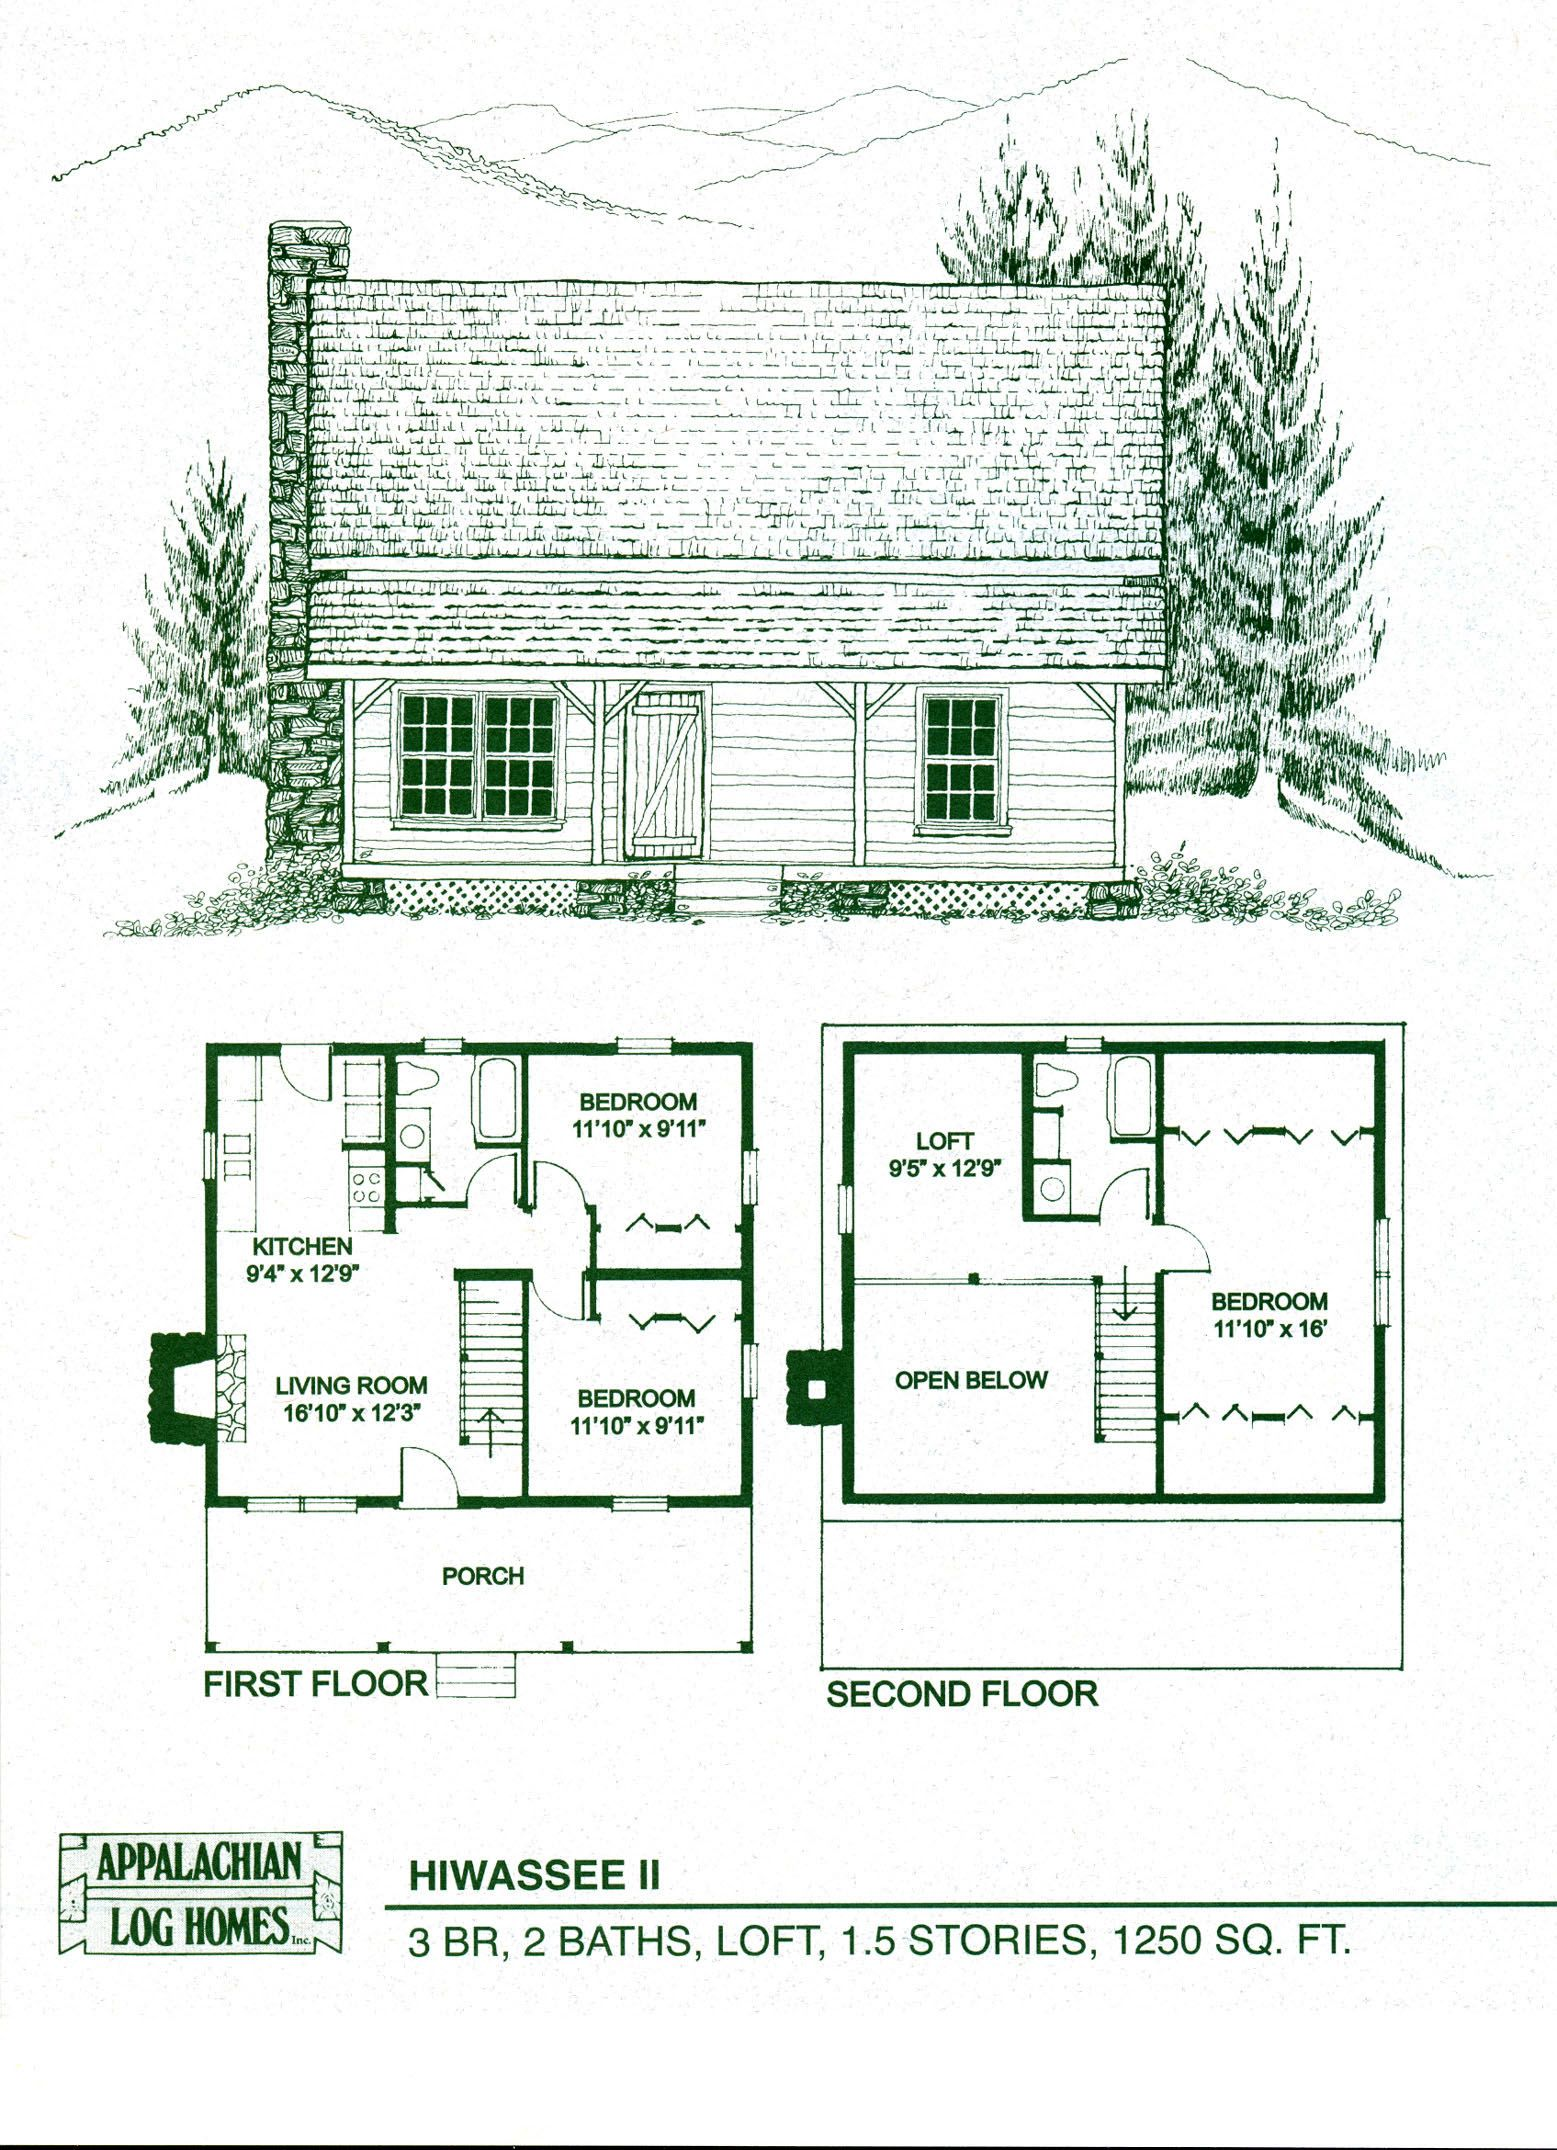 Cabin Floor Plans rustic cabin plans big log cabin floor plans lrg 7eb029779d428930 rustic cabin plans big log cabin Log Home Floor Plans Log Cabin Kits Appalachian Log Homes